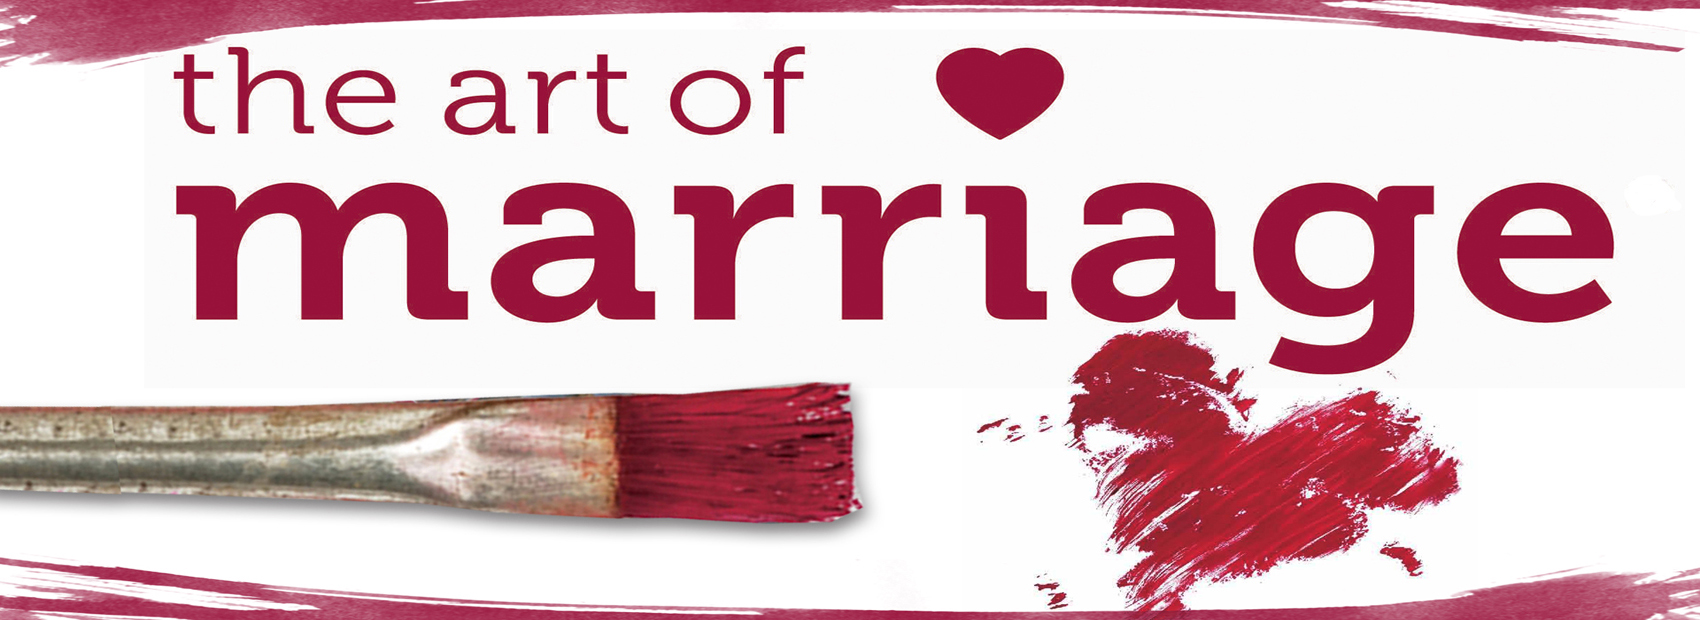 Art-of-Marriage-Banner1